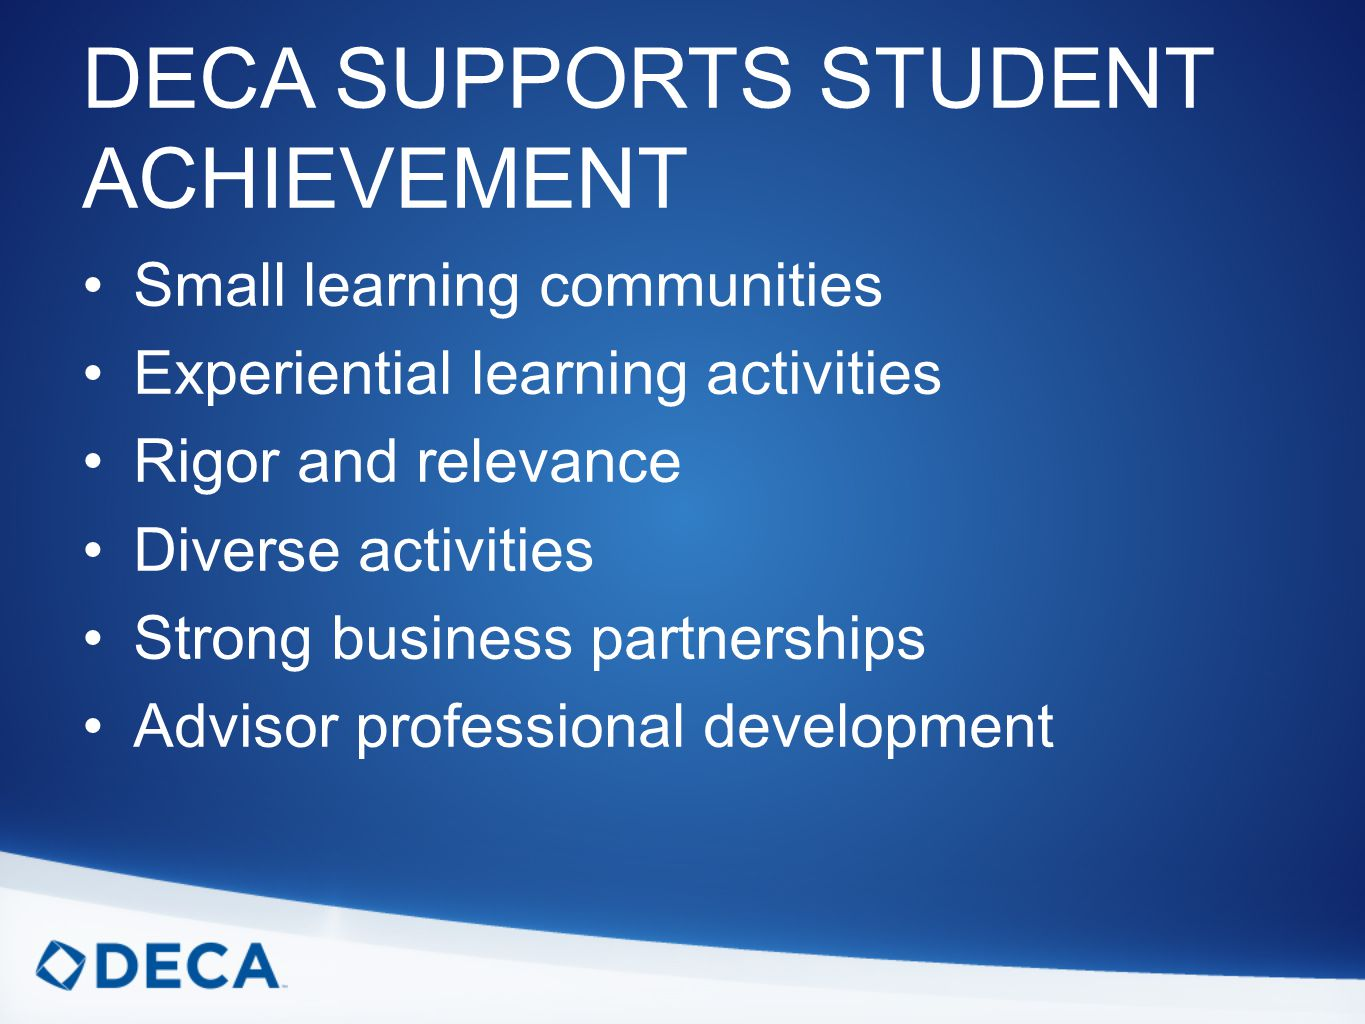 DECA SUPPORTS STUDENT ACHIEVEMENT Small learning communities Experiential learning activities Rigor and relevance Diverse activities Strong business partnerships Advisor professional development